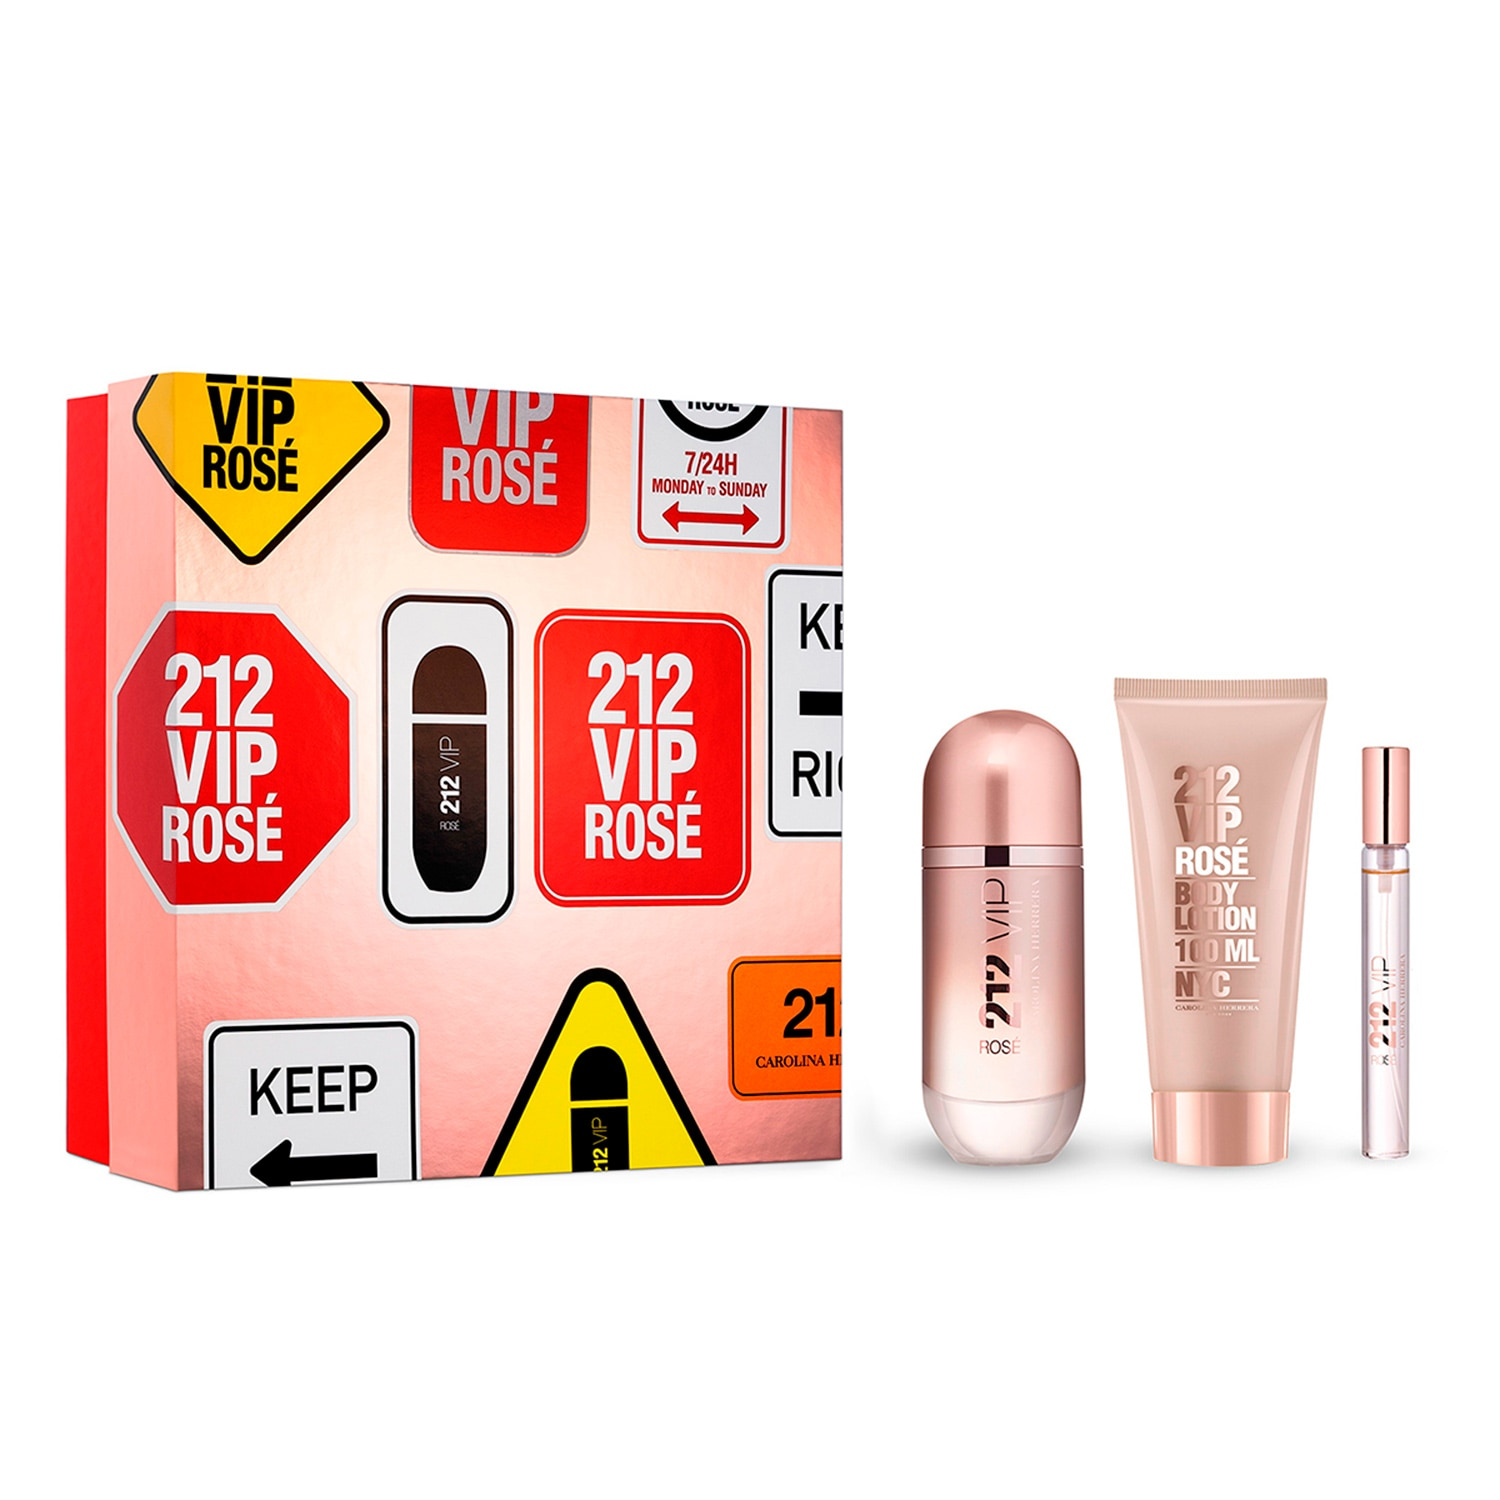 212 VIP ROSÉ EDP 80ML + BODY LOTION 100ML + SPRITZER 10ML